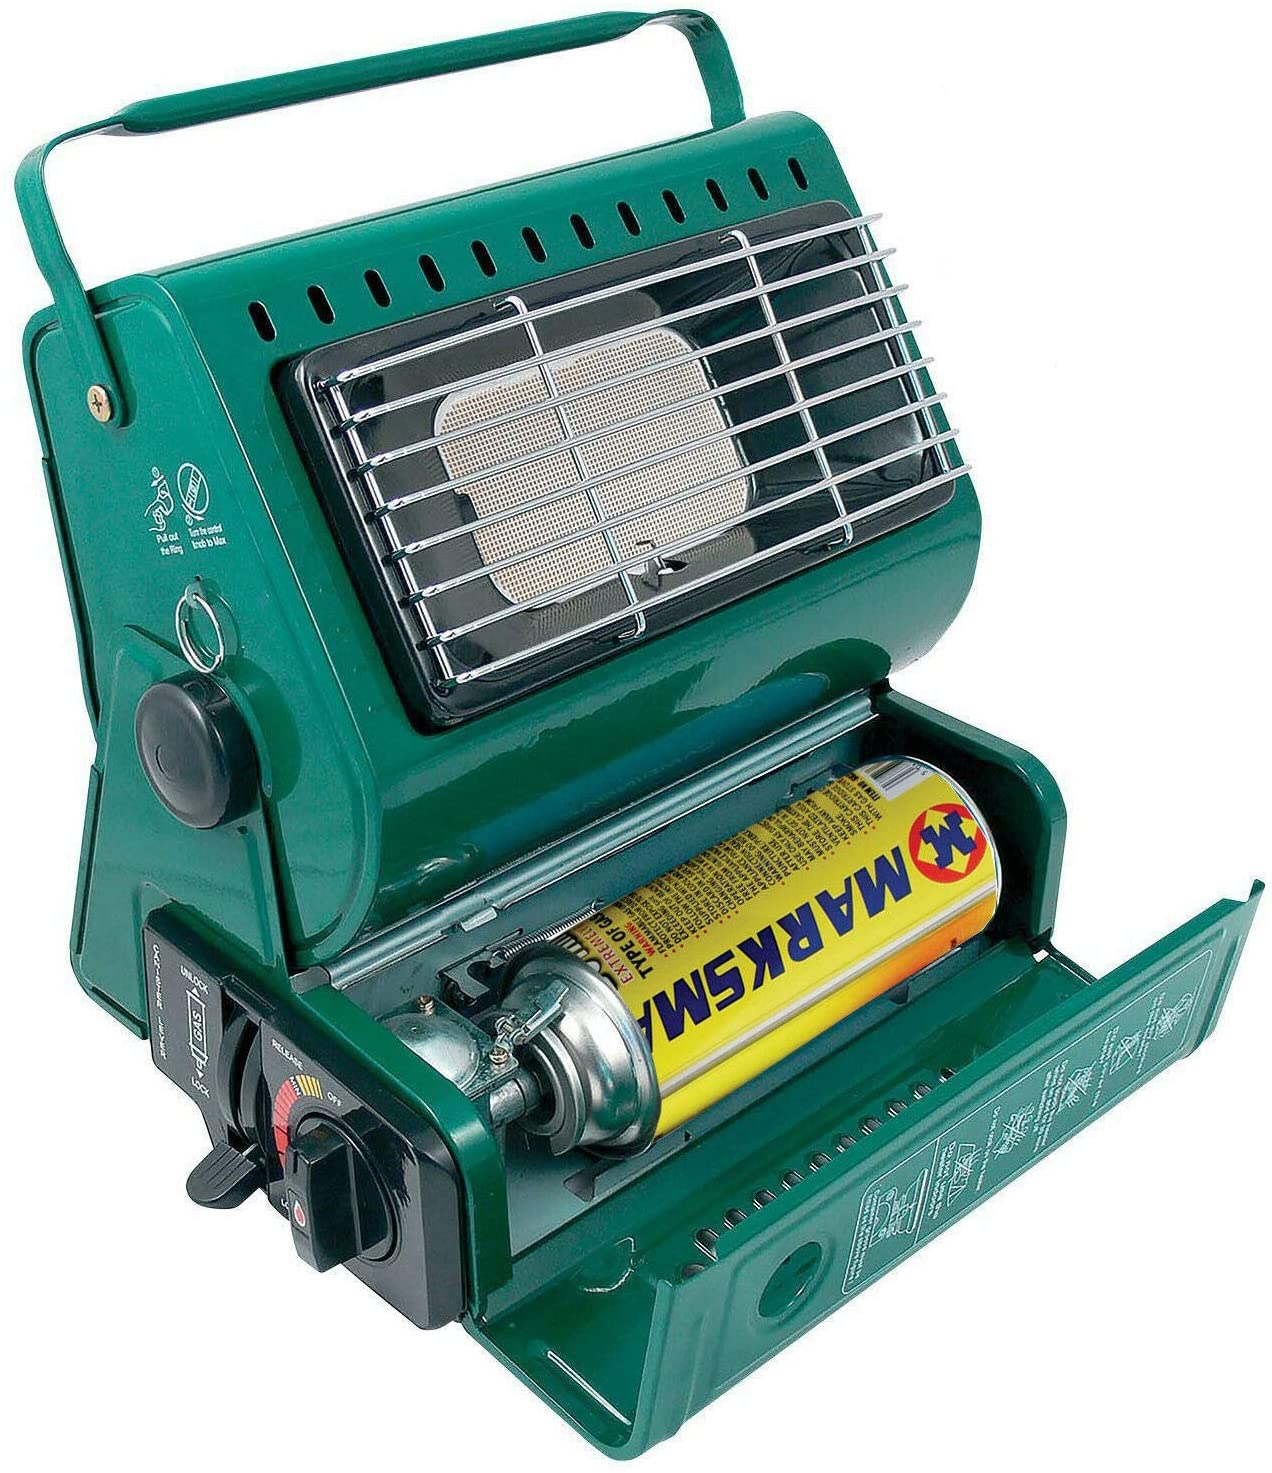 Isss Portable Gas Heater